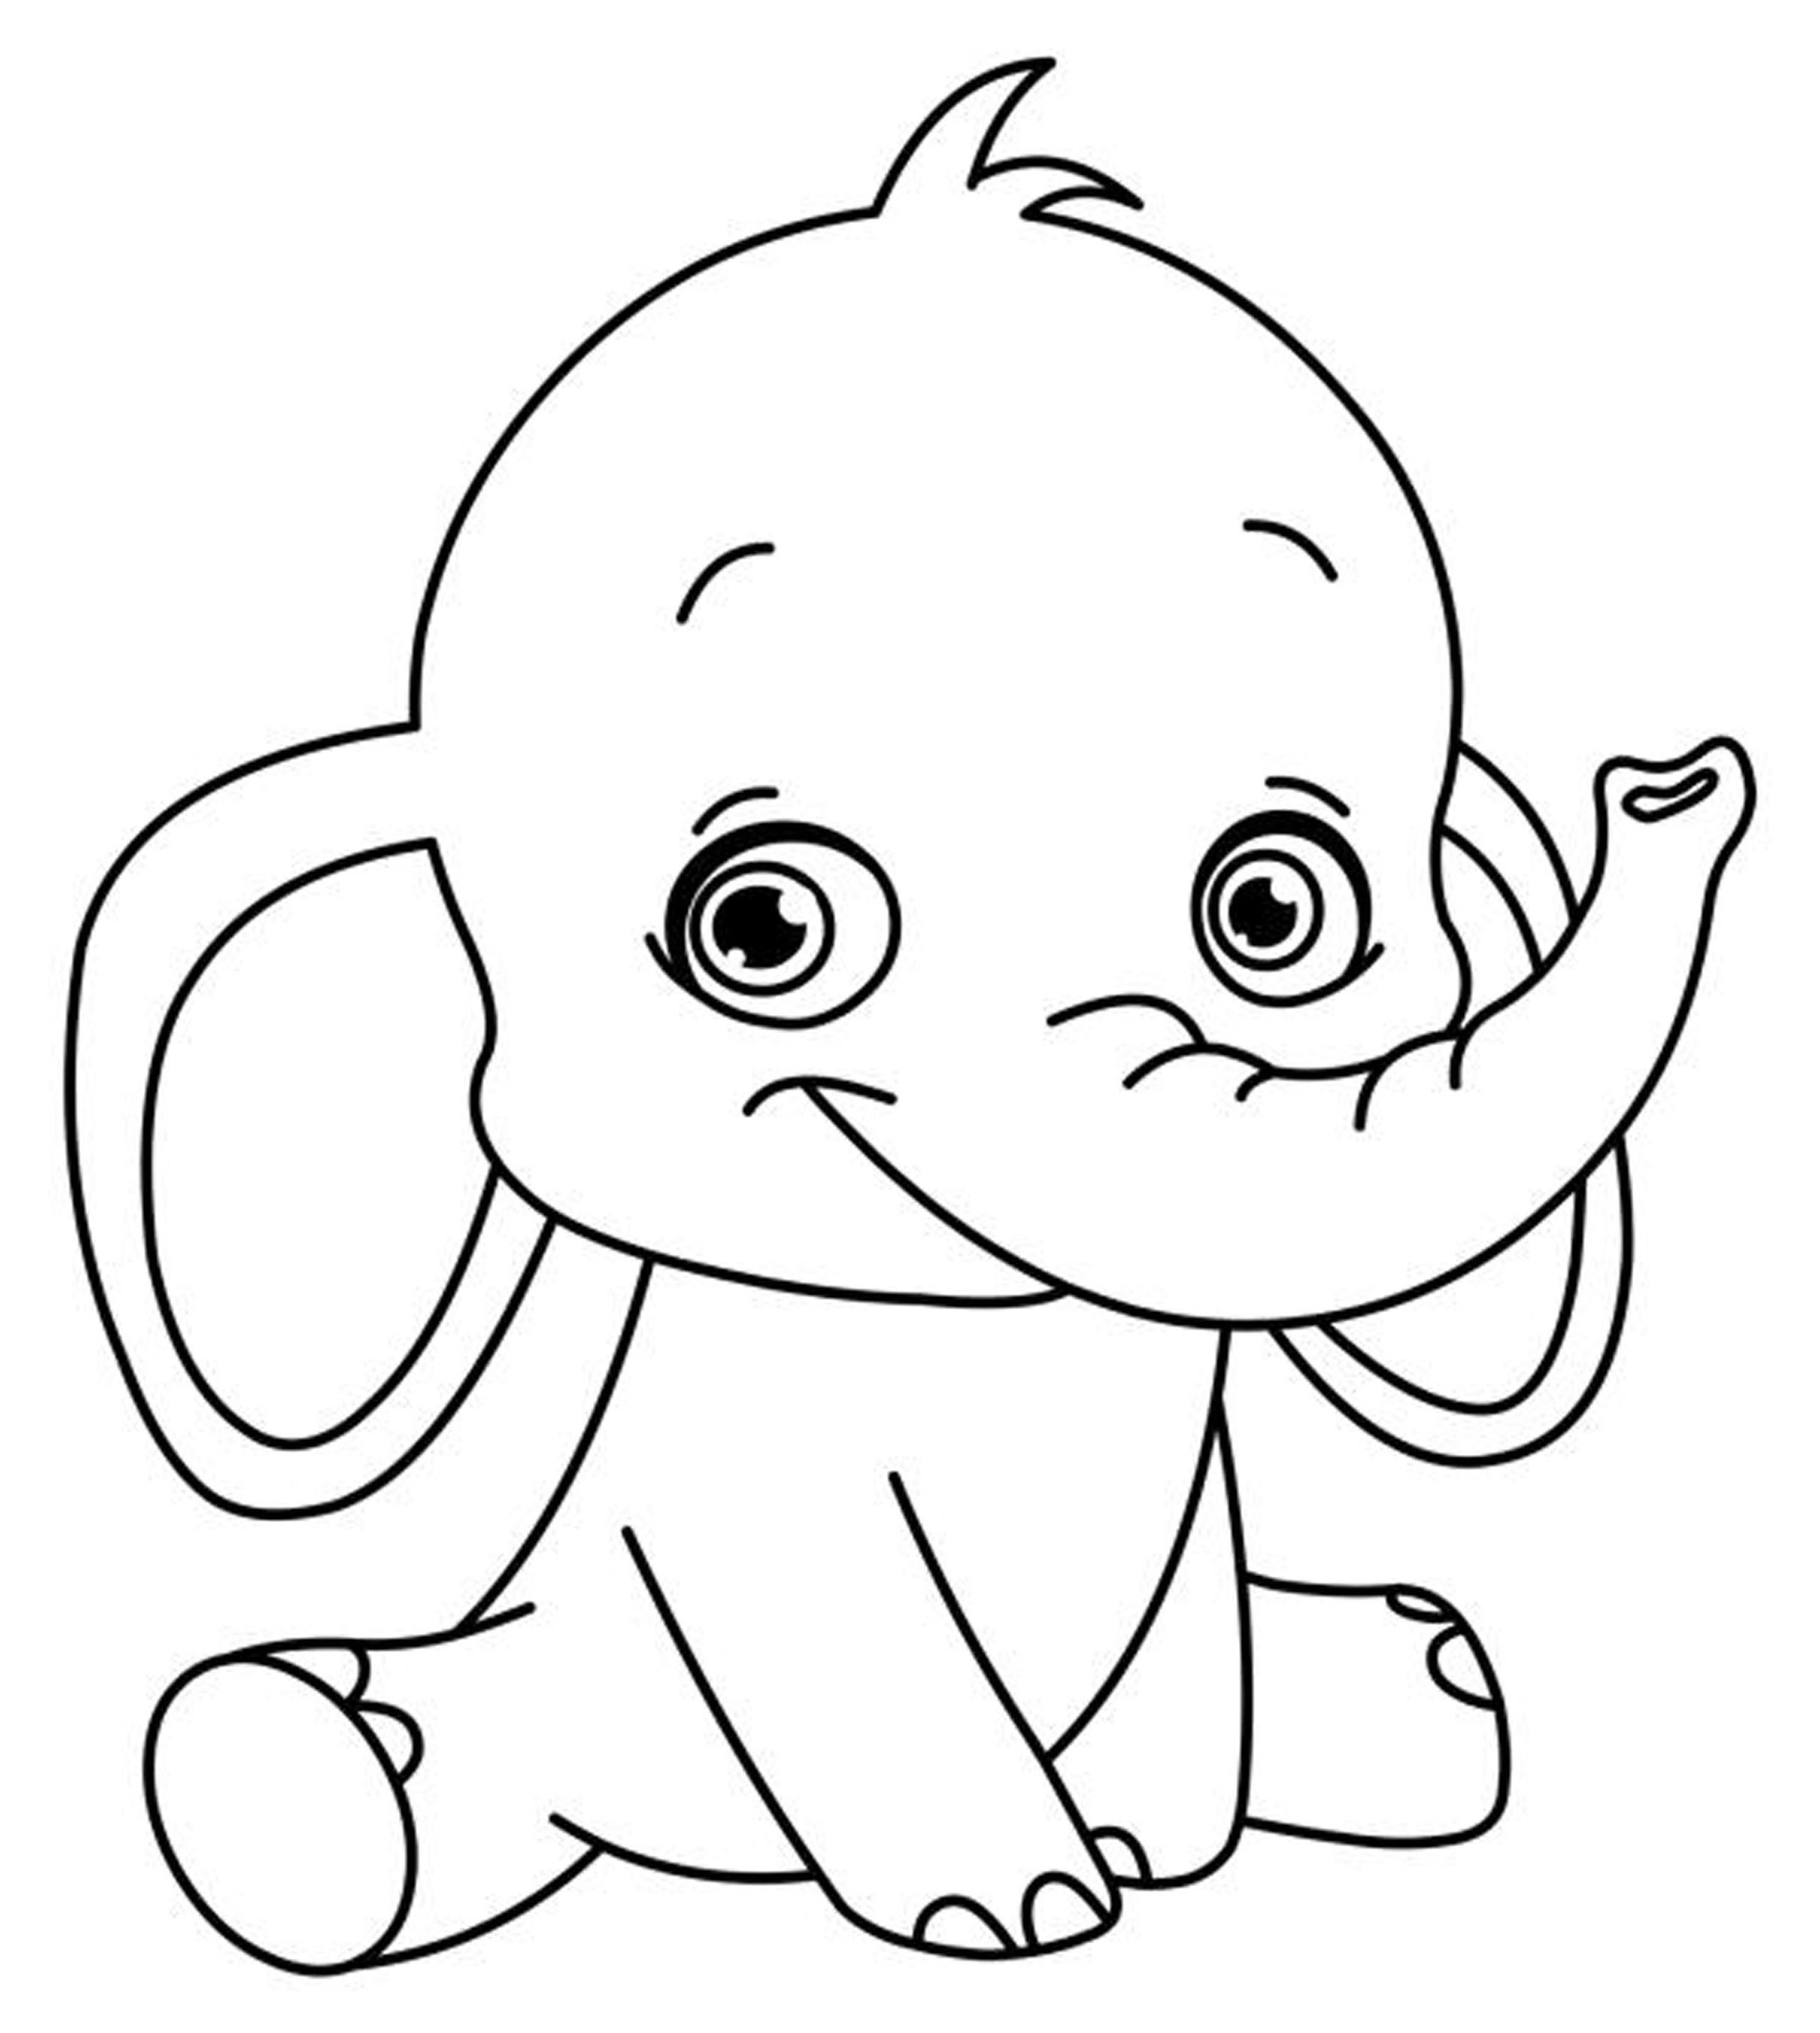 disney printable easy coloring pages get this free simple ariel coloring pages for children af8vj printable disney pages coloring easy